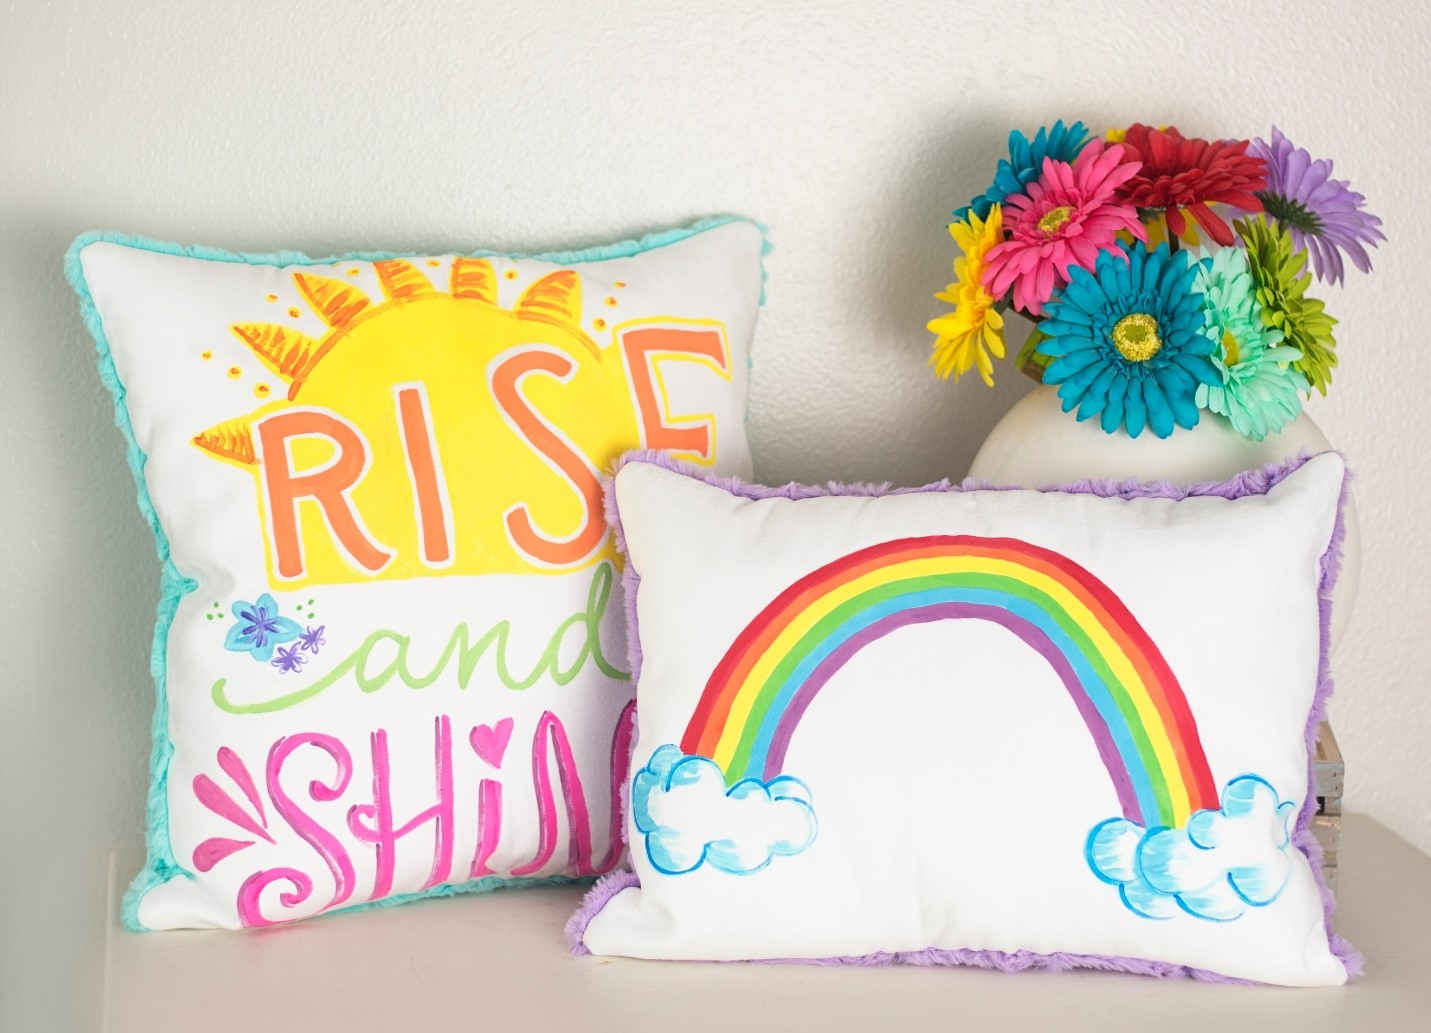 Pretty Painted Pillows DIY for Spring in Cuddle® Suede and Luxe Cuddle®